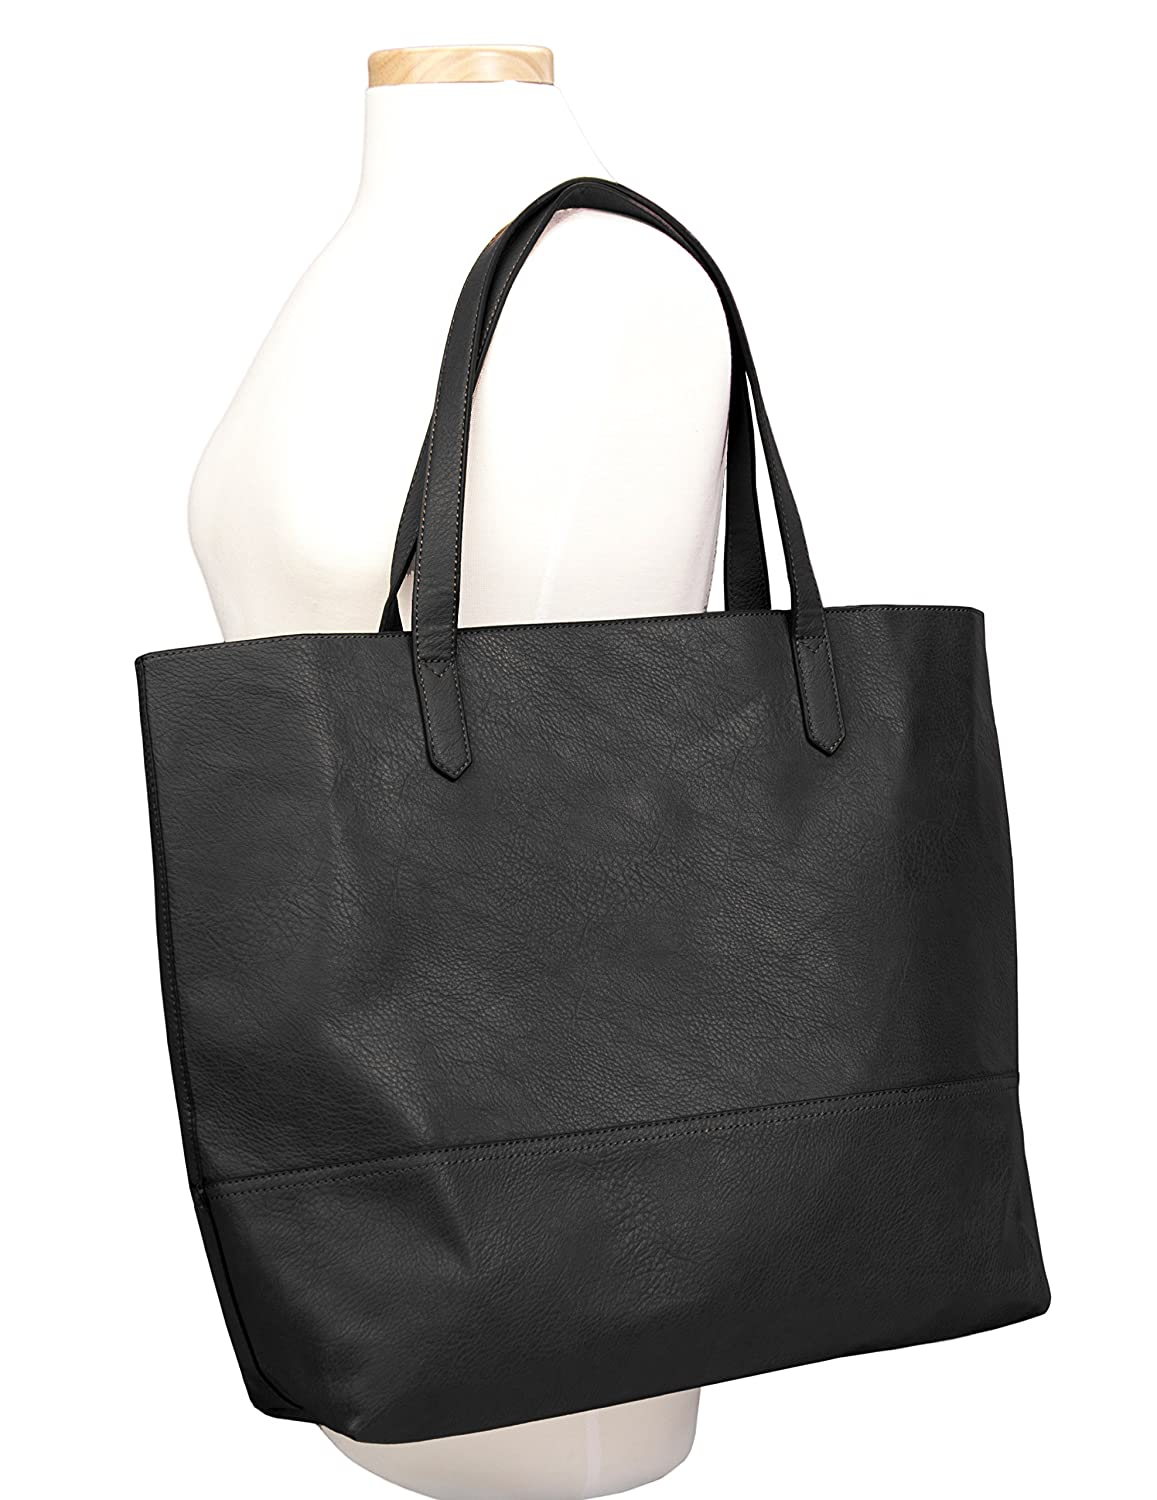 6fec965420 Amazon.com  Overbrooke Large Vegan Leather Tote Bag - Womens Slouchy  Shoulder Bag with Open Top  Shoes